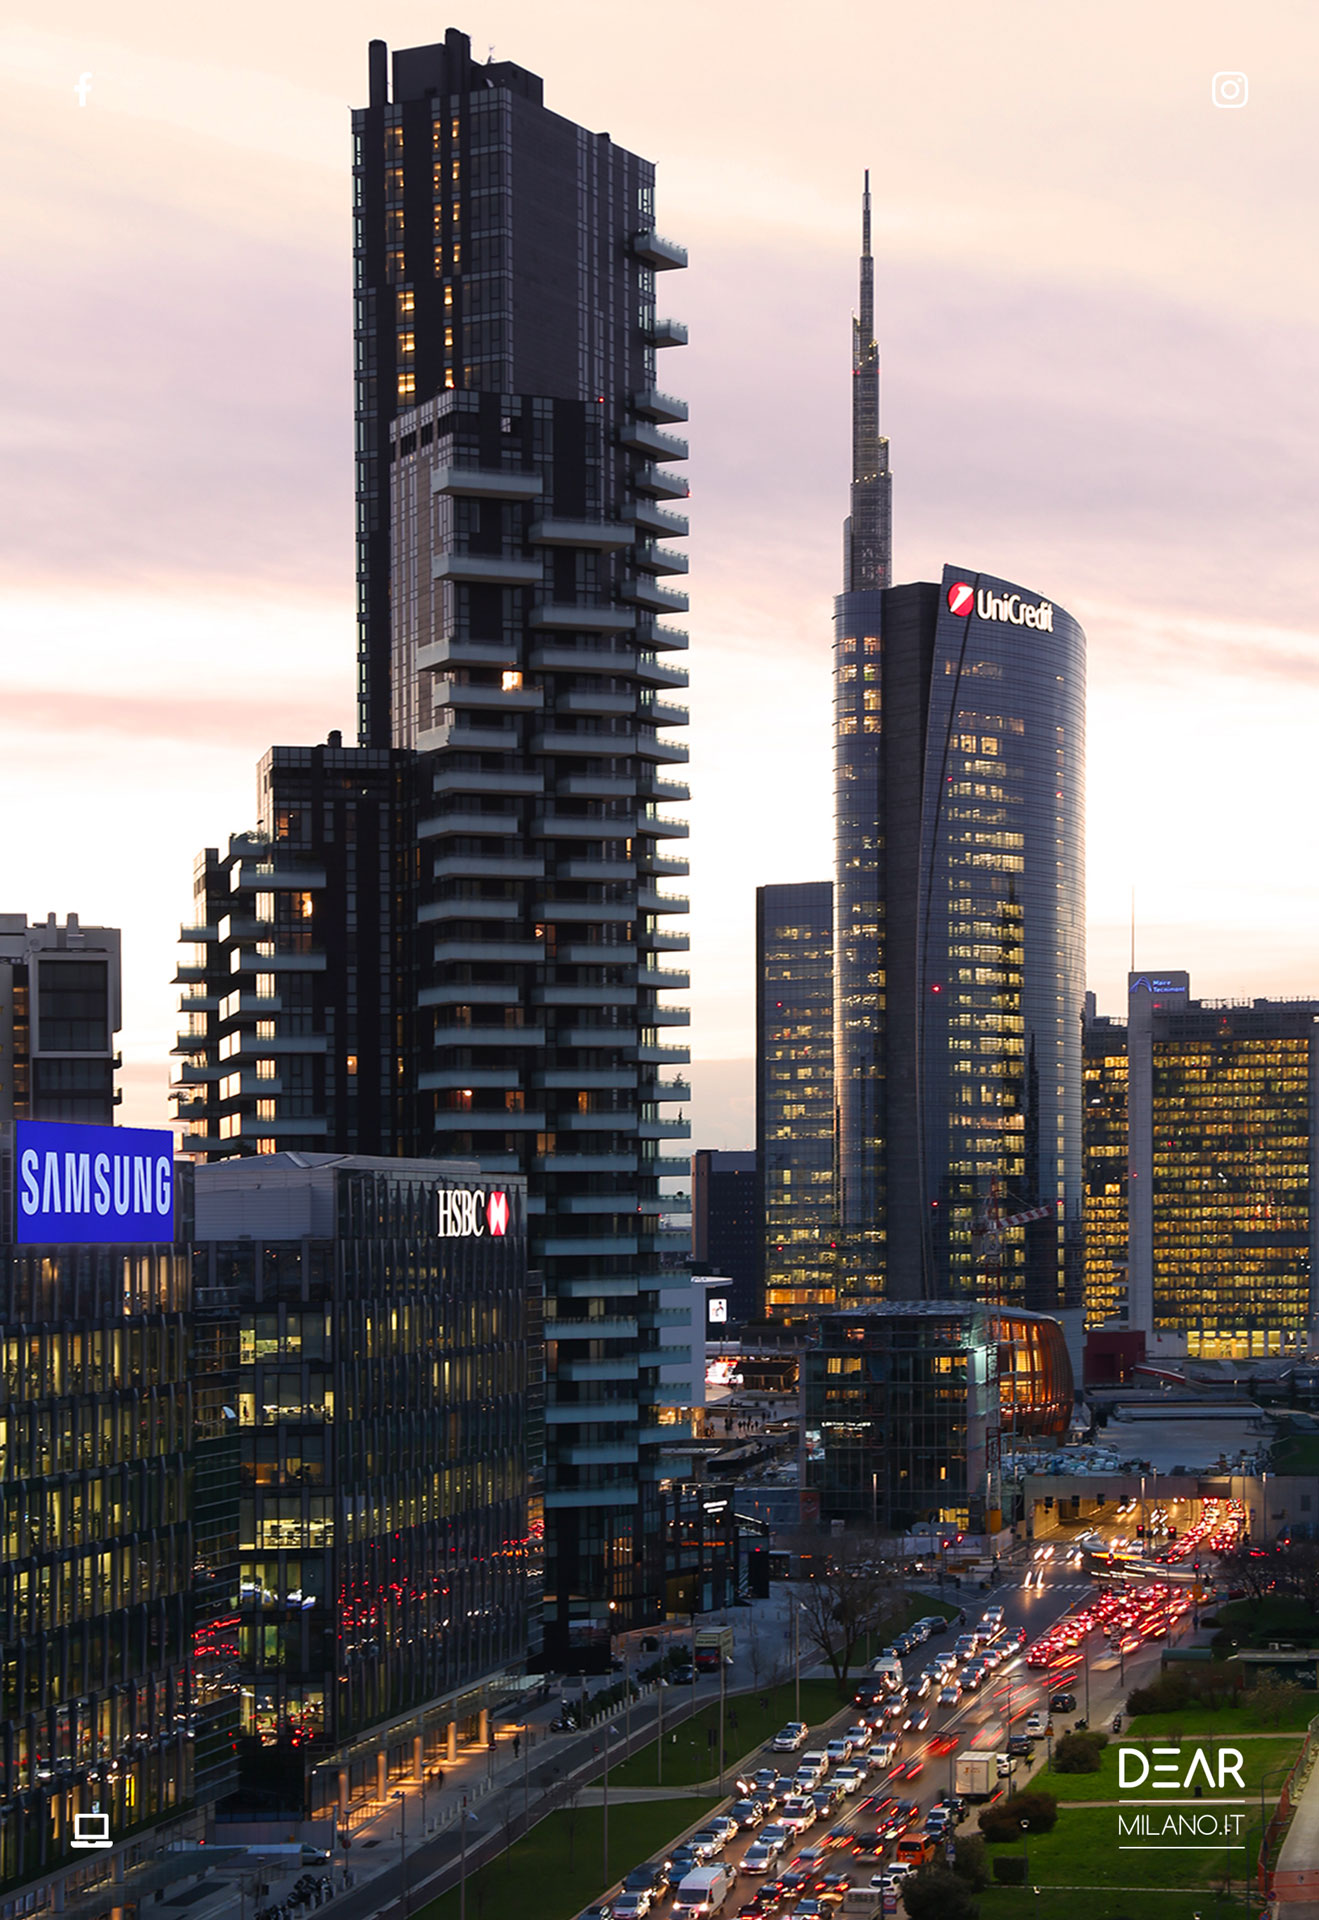 torre solaria, torre unicredit, samsung district, coima, hsbc milano, torri maire tecnimont